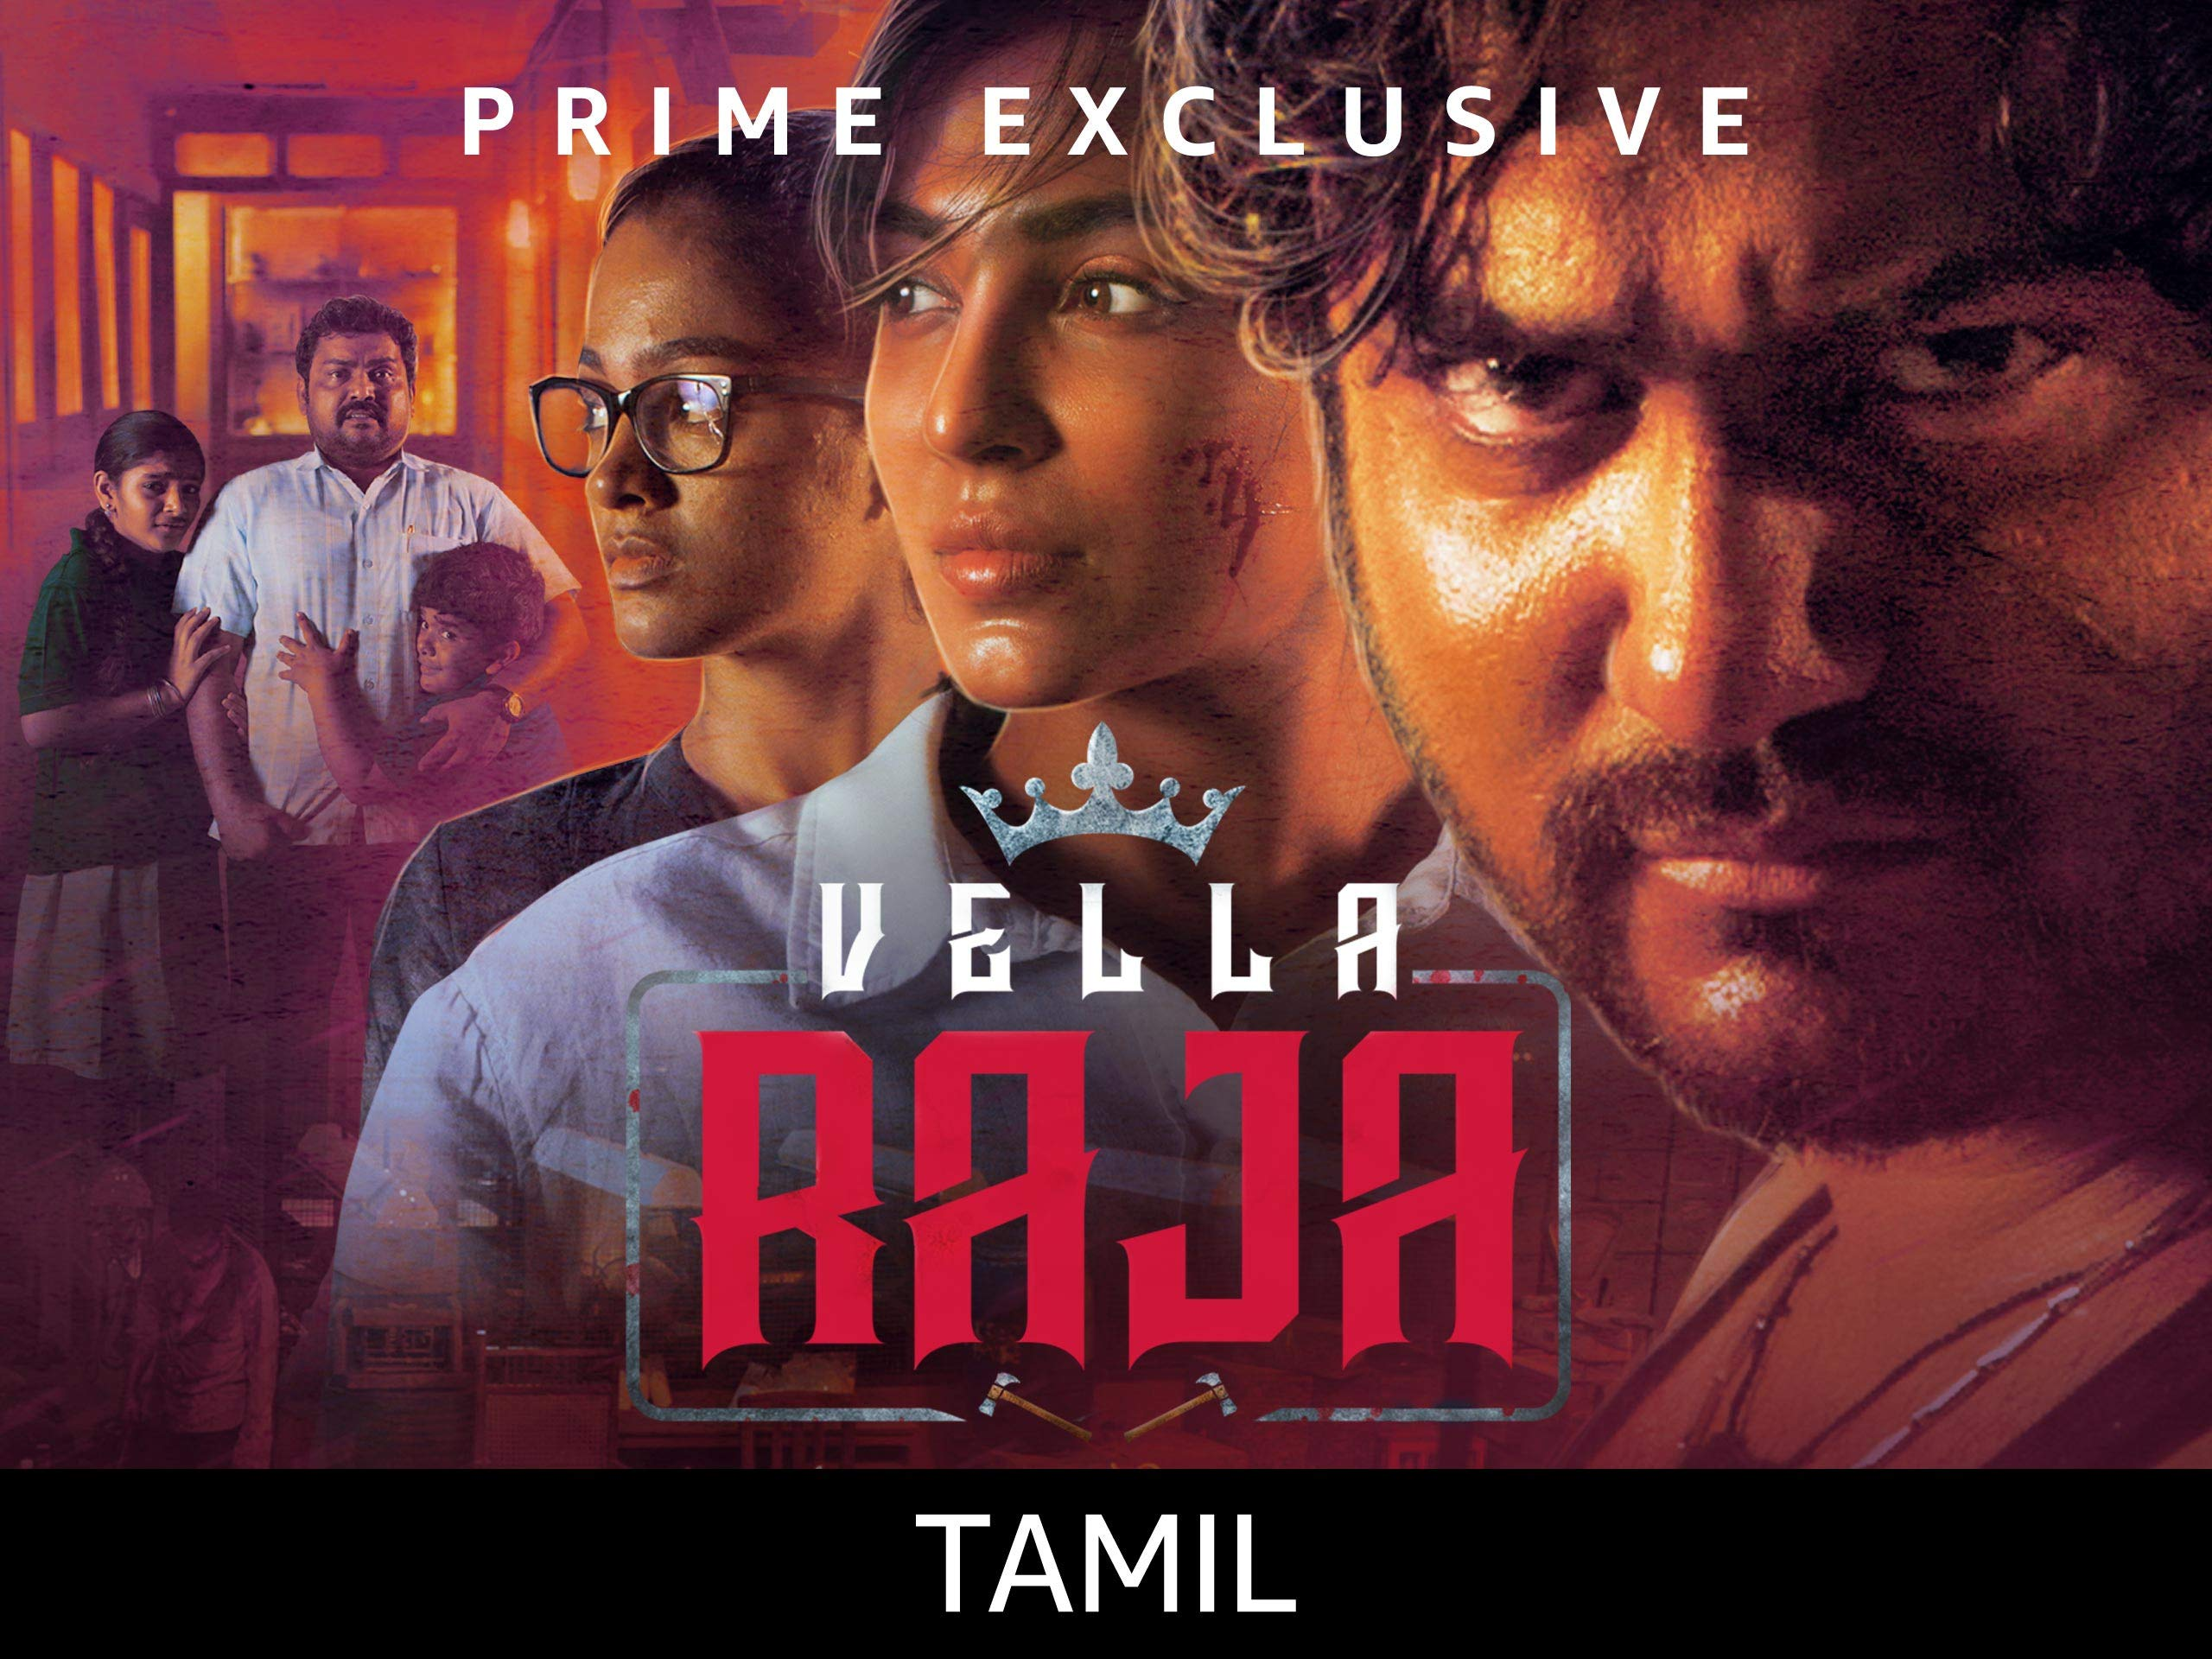 Vella Raja - Season 1 (Tamil) (4K UHD) on Amazon Prime Video UK